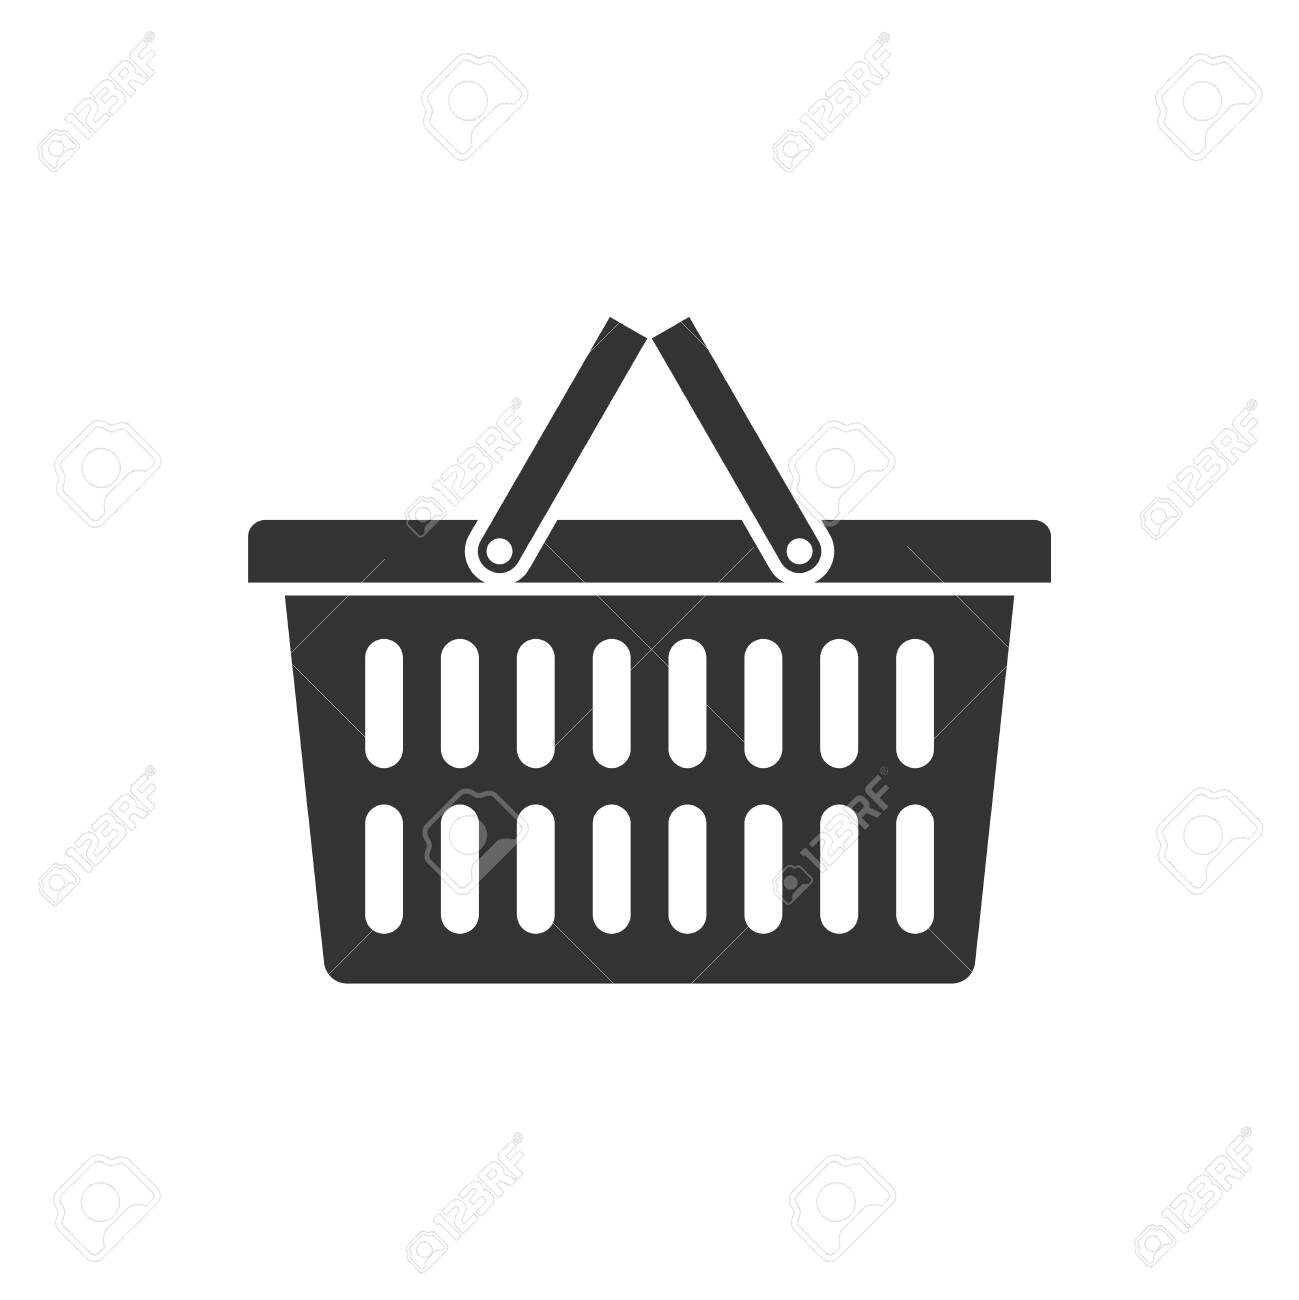 Shopping basket graphic icon. Food basket sign isolated on white background. Vector illustration - 154779123